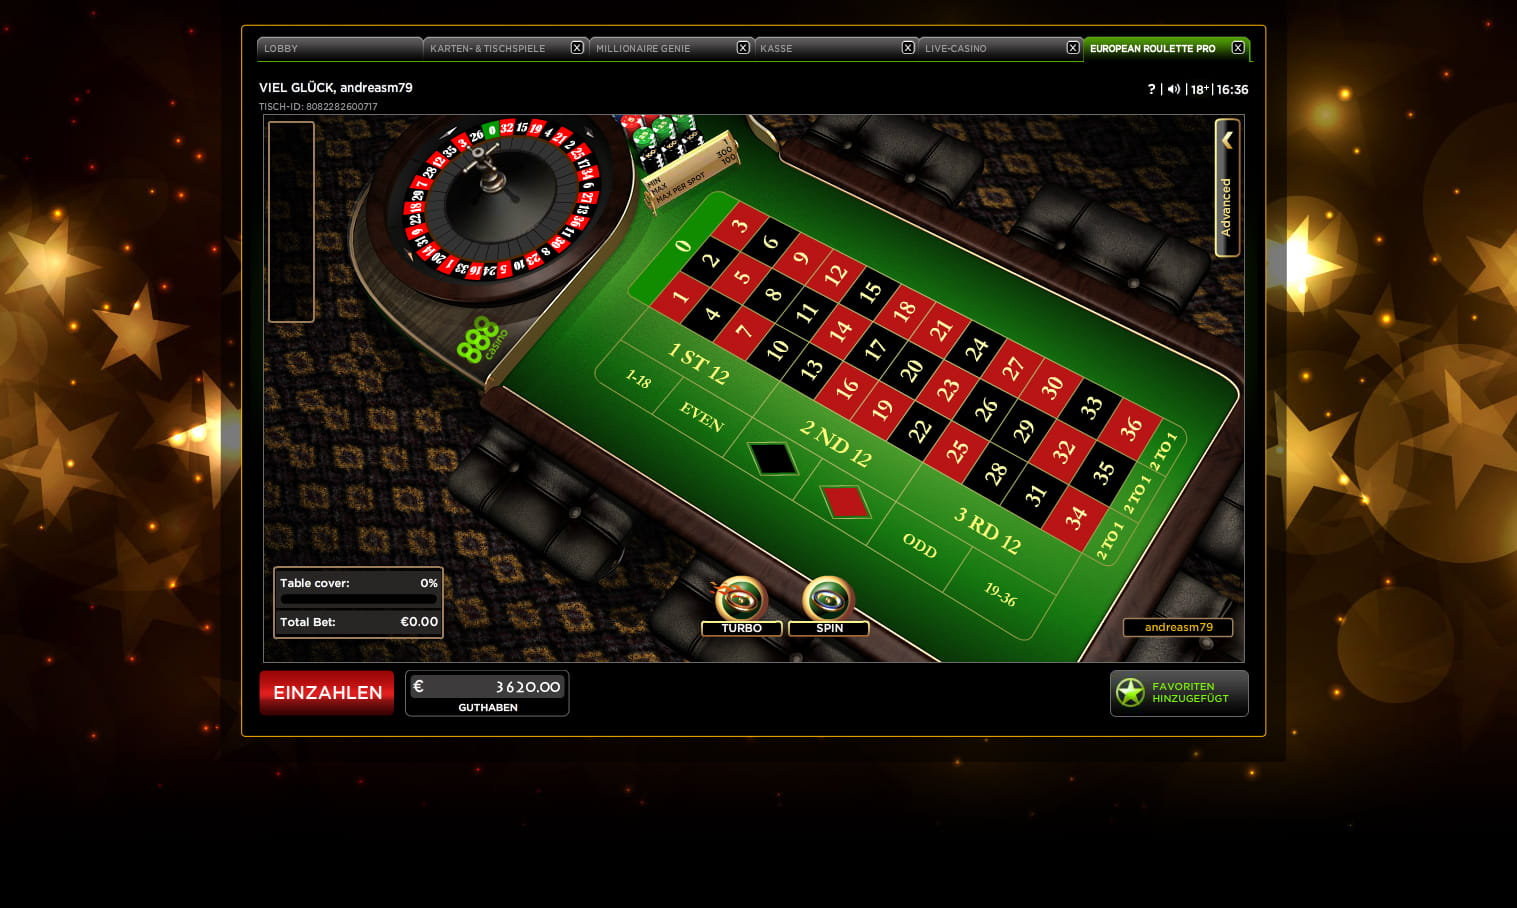 online casino strategie casino spiele gratis